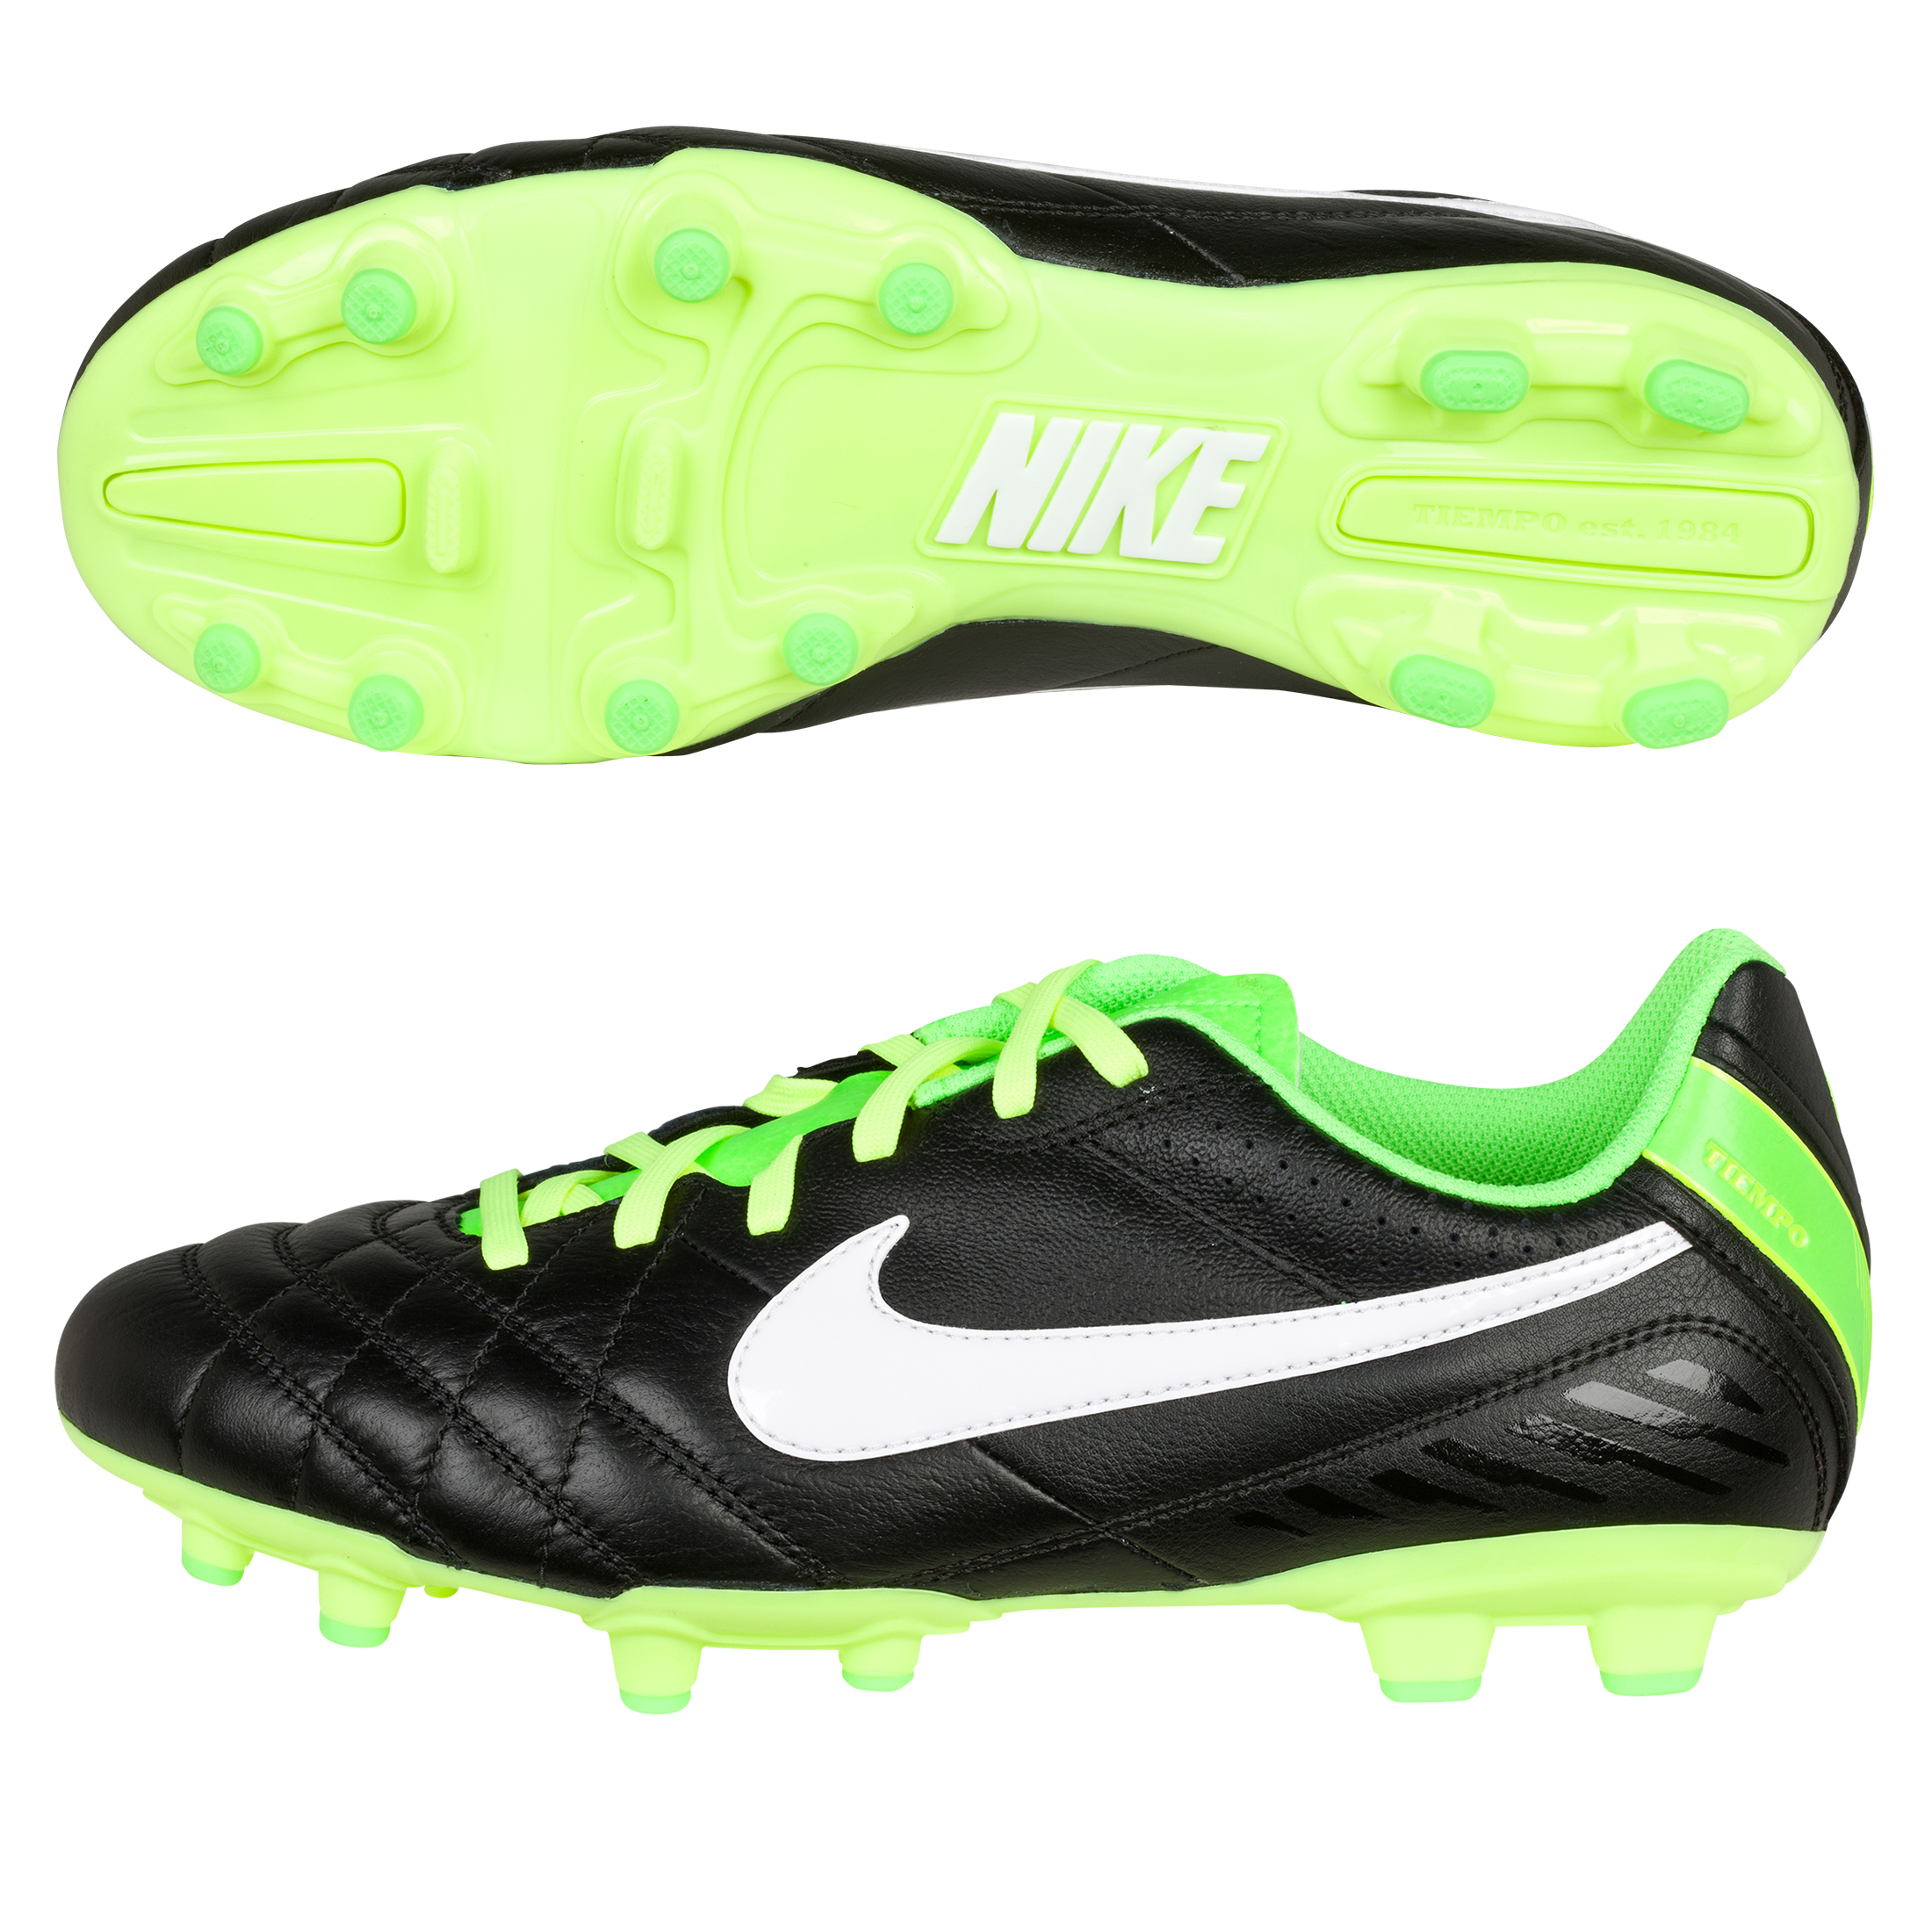 Nike Tiempo Natural IV Ltr Firm Ground Football Boots - Black/White/Electric Green - Kids